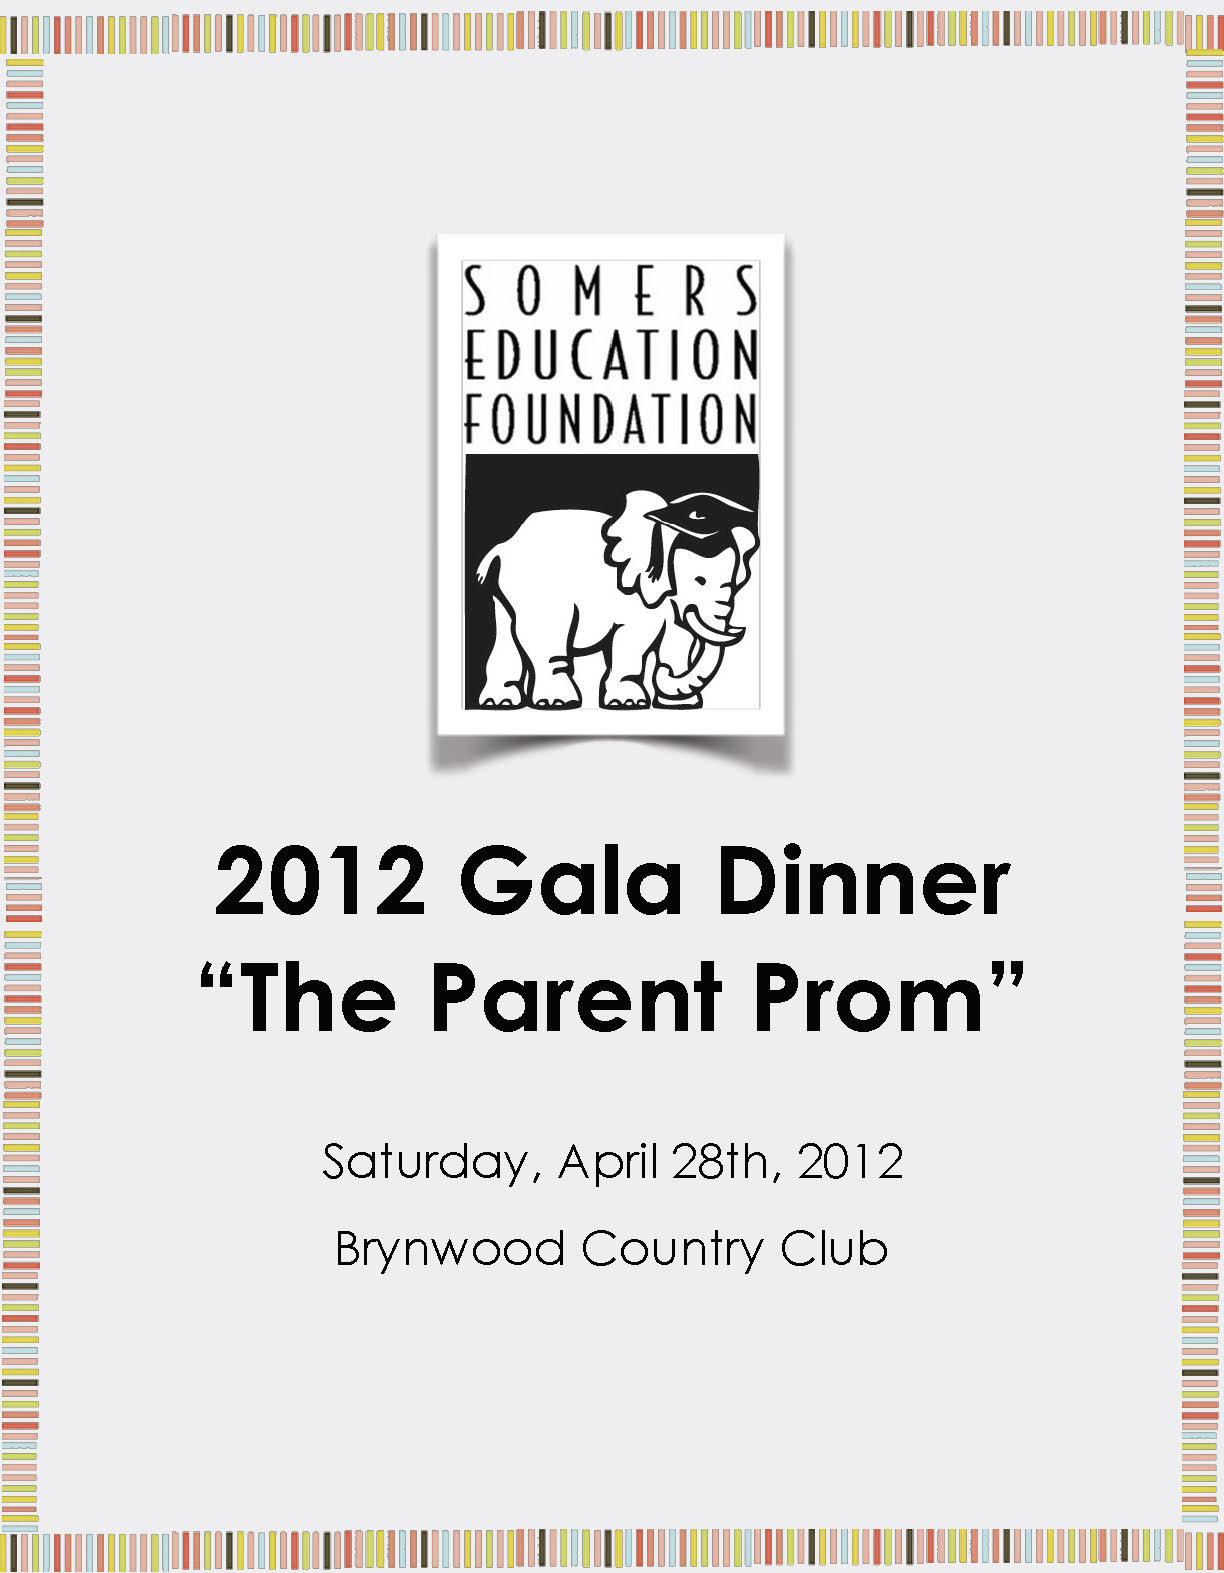 Somers Education Foundation 2012 Printed Gala Dinner Program Cover